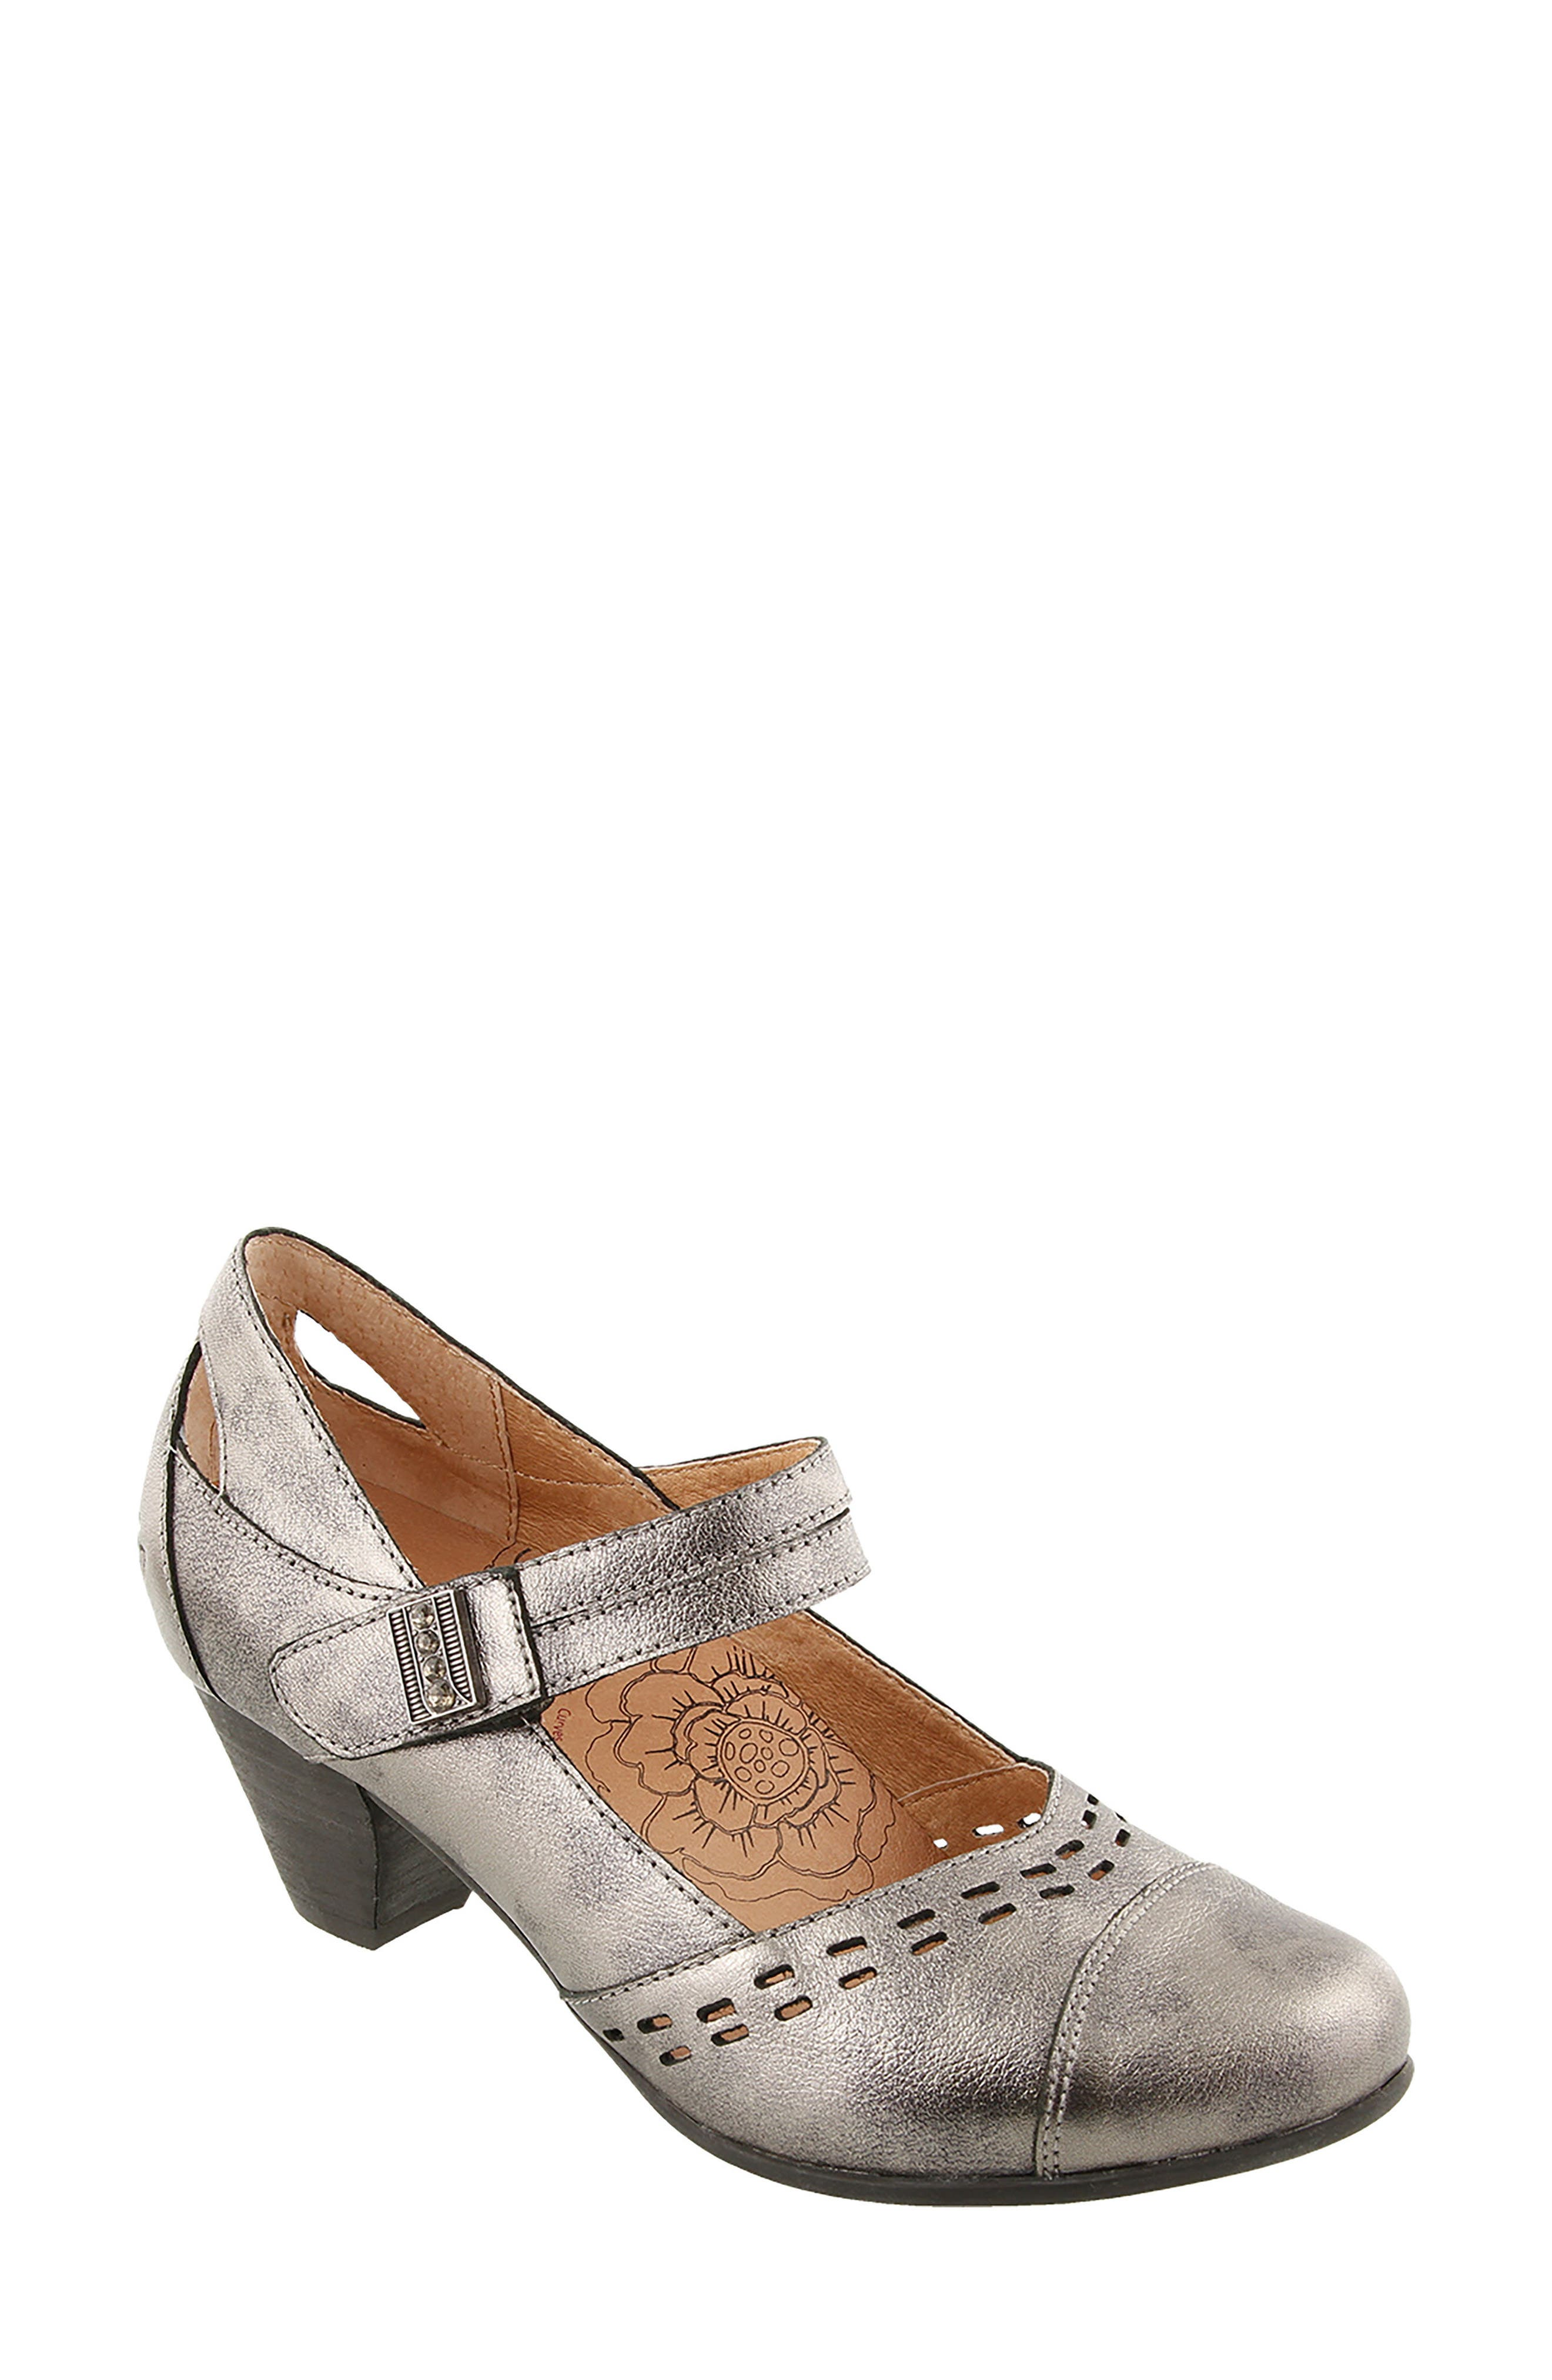 Stunner Laser Cutout Mary Jane Pump,                         Main,                         color, Pewter Leather